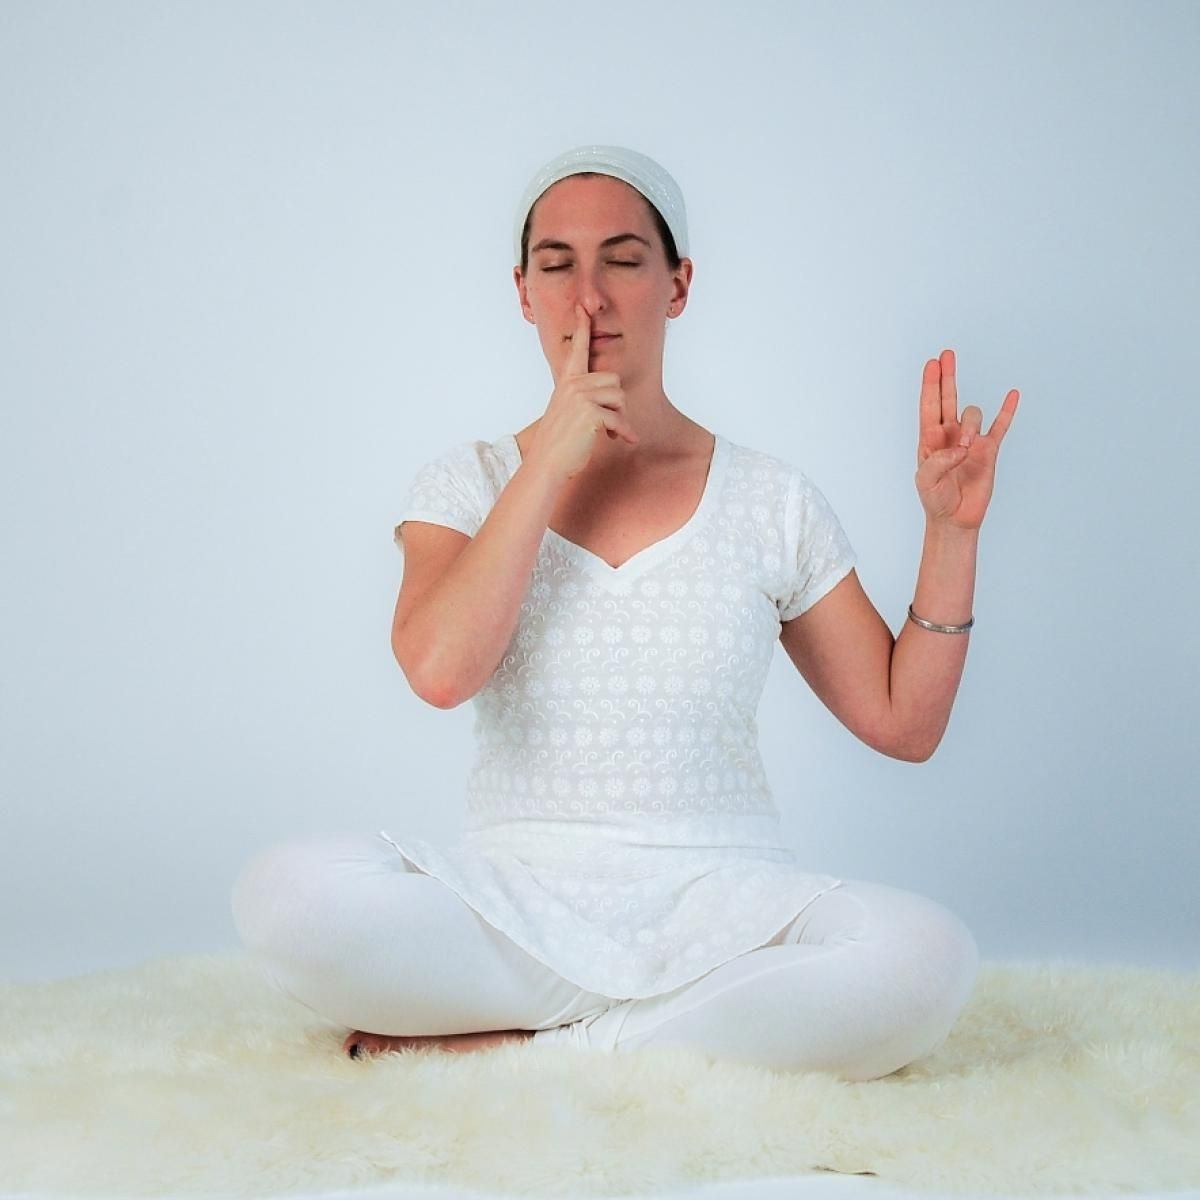 This Advanced Immune Therapy Hits At Viruses And Bacteria The Head Must Be Covered Or Else You C Kundalini Yoga Immune System Boosters Kundalini Yoga Classes